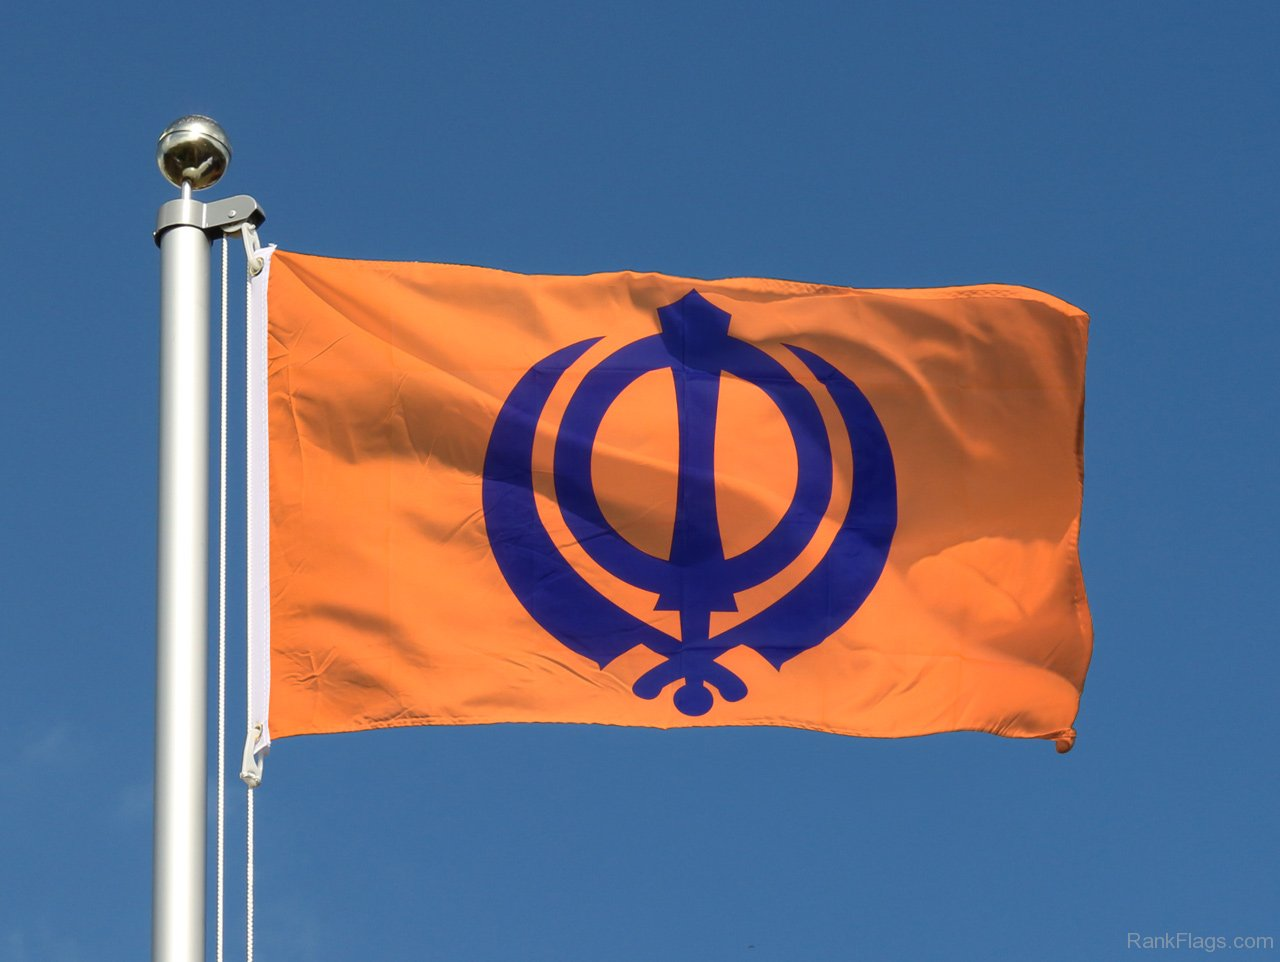 sikh religion Sikhism is the fifth largest religion in the world with a population of upwards of 30 million worldwide there are an estimated 250,000 sikhs in the united states having first arrived in the late.